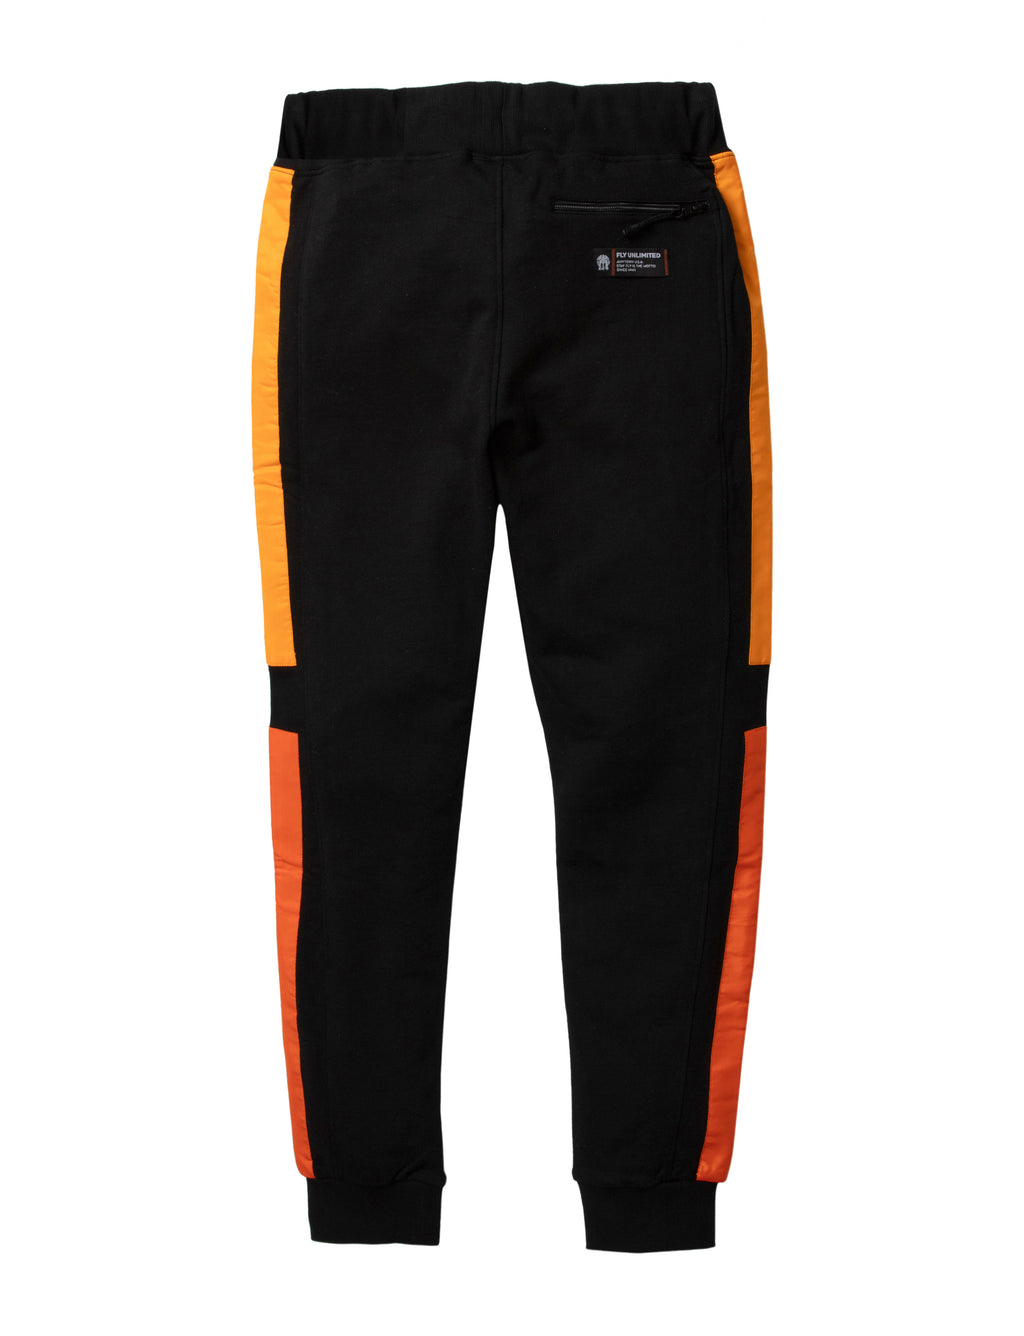 Universal Sweatpants